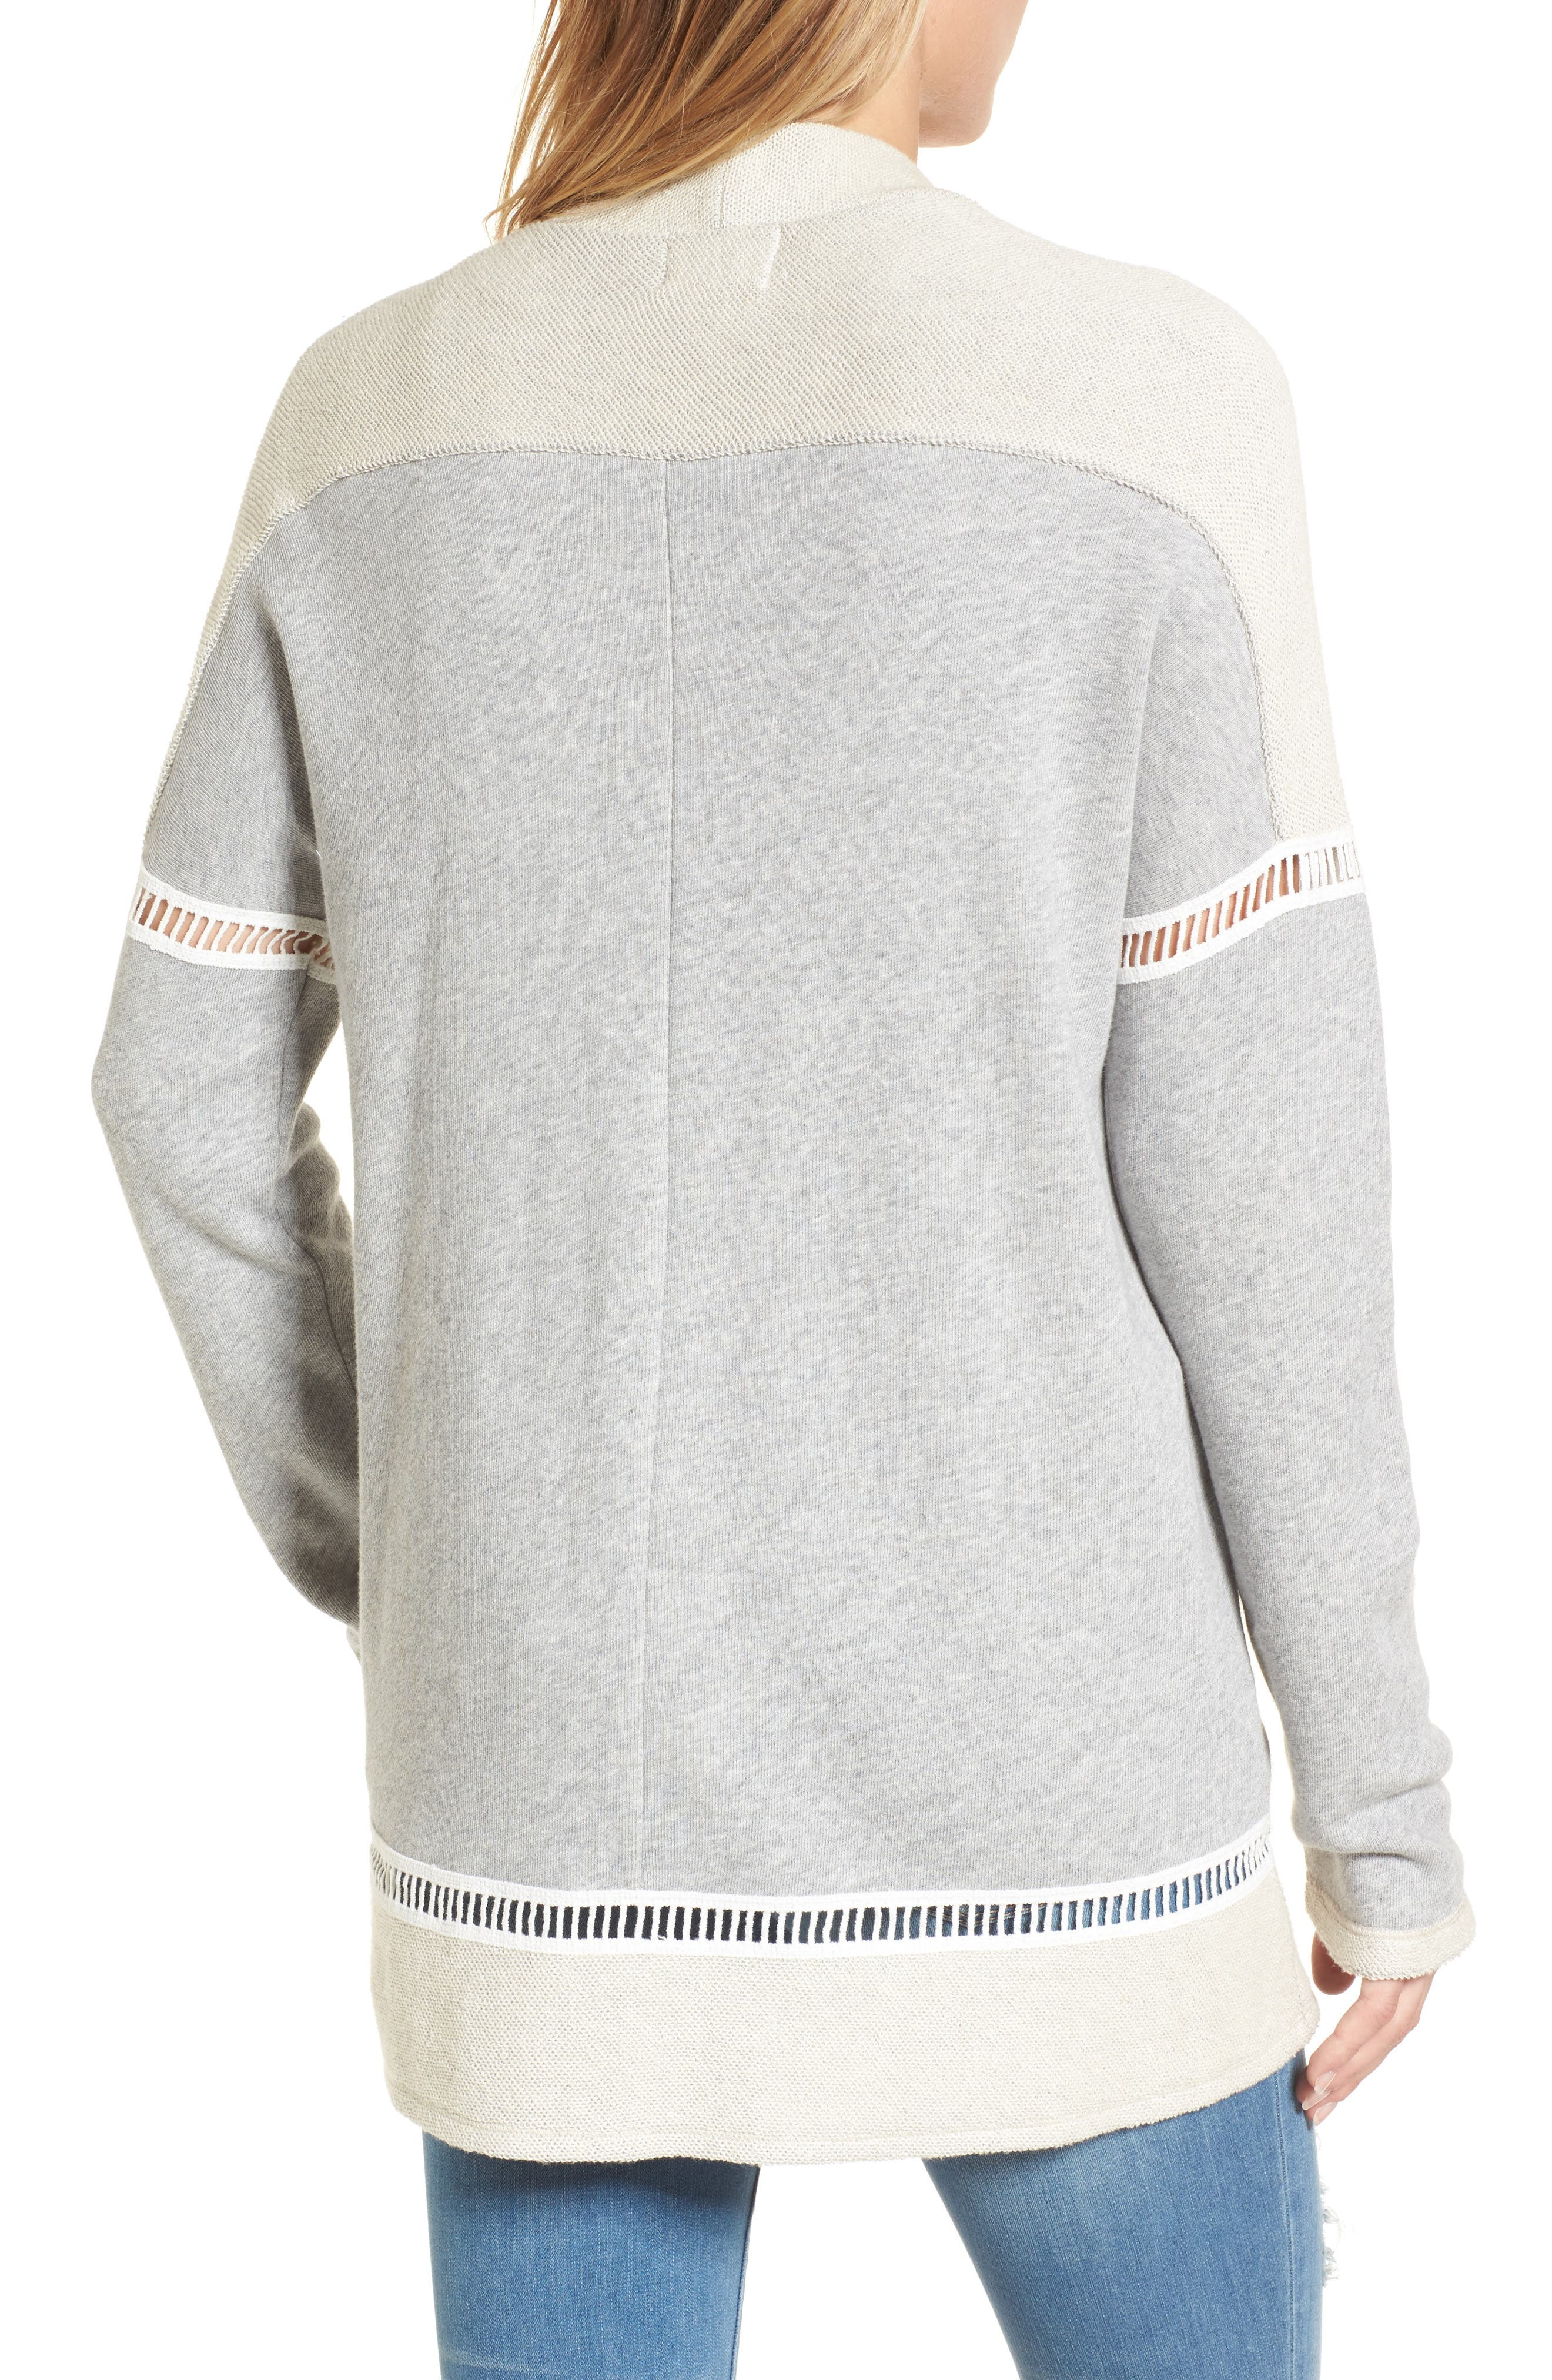 French Terry Open Front Cotton Cardigan,                             Alternate thumbnail 2, color,                             Grey Heather